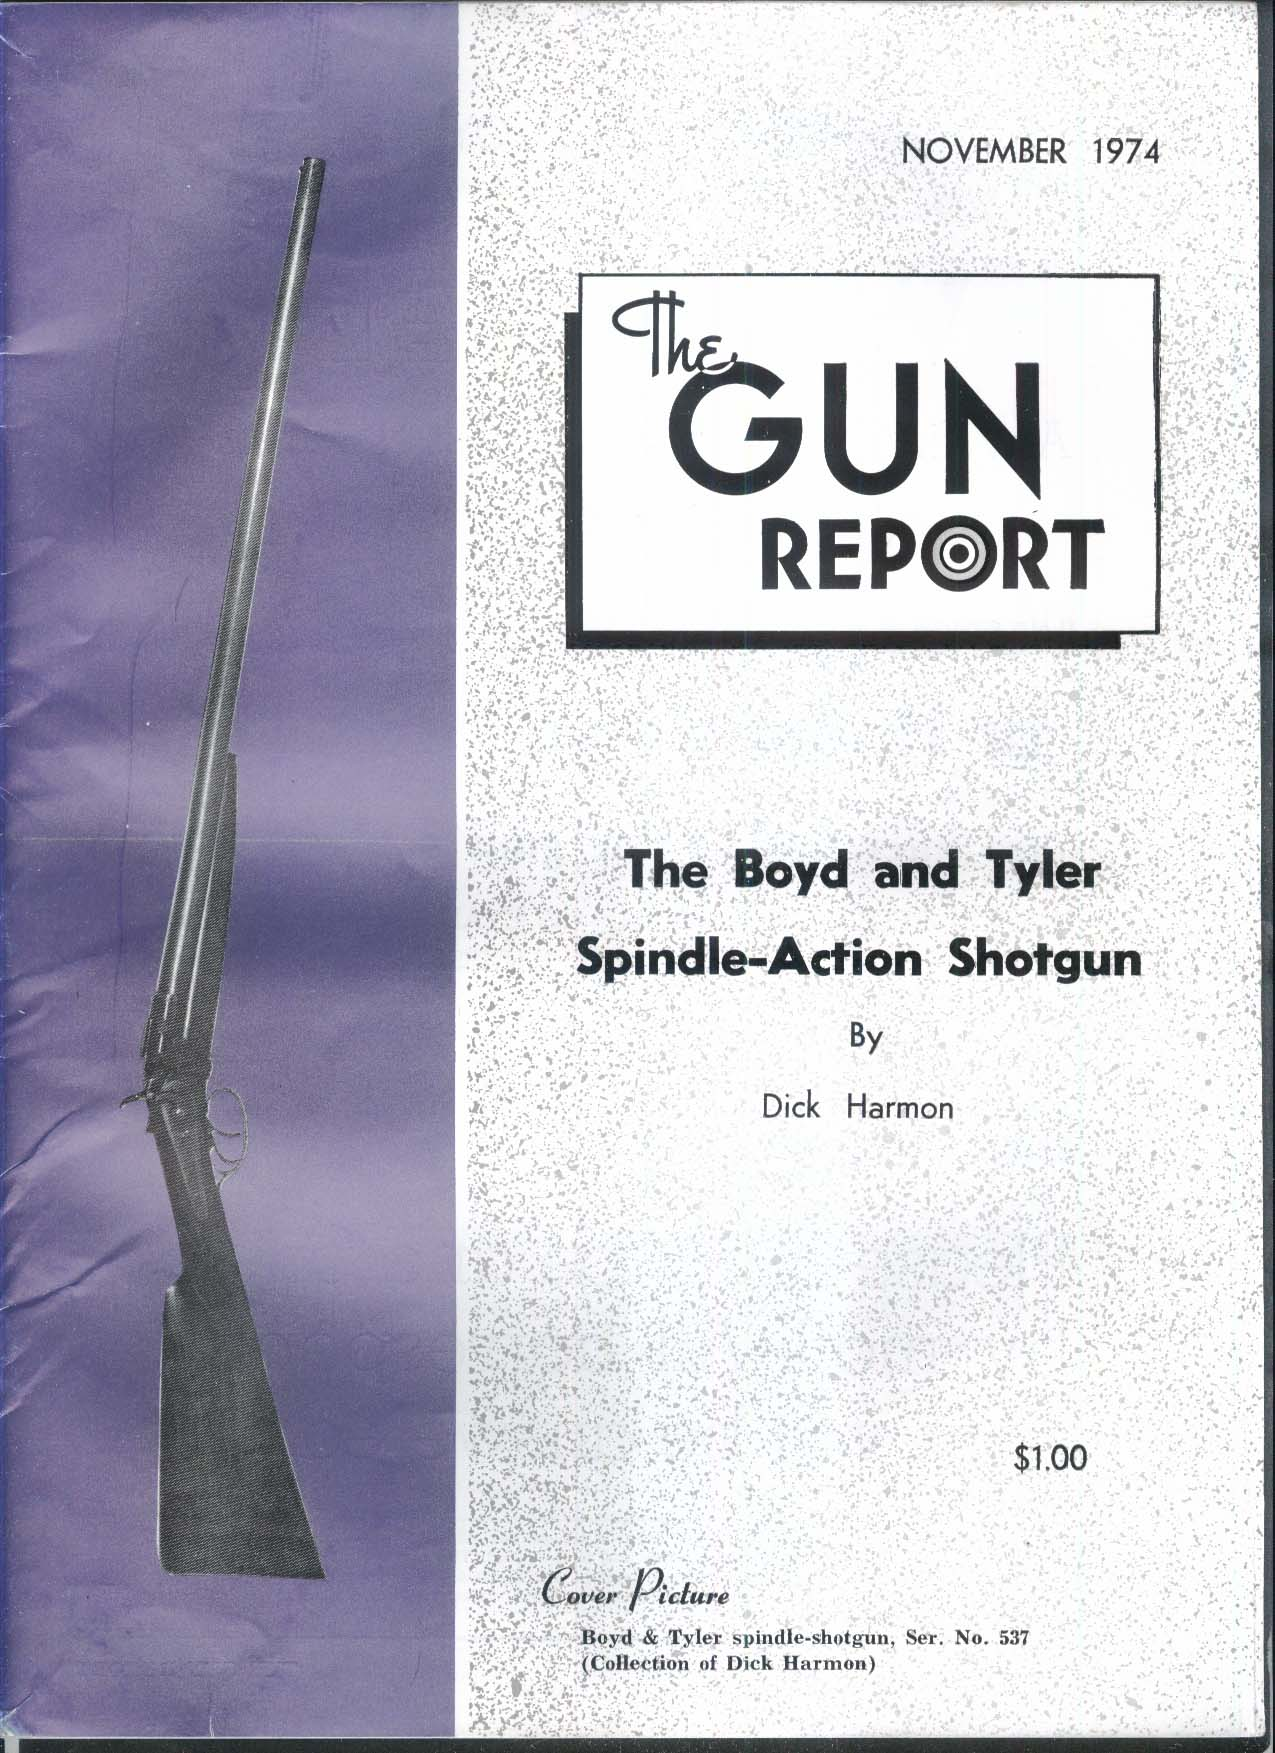 GUN REPORT Boyd & Tyler Spindle-Action Shotgun + 11 1974